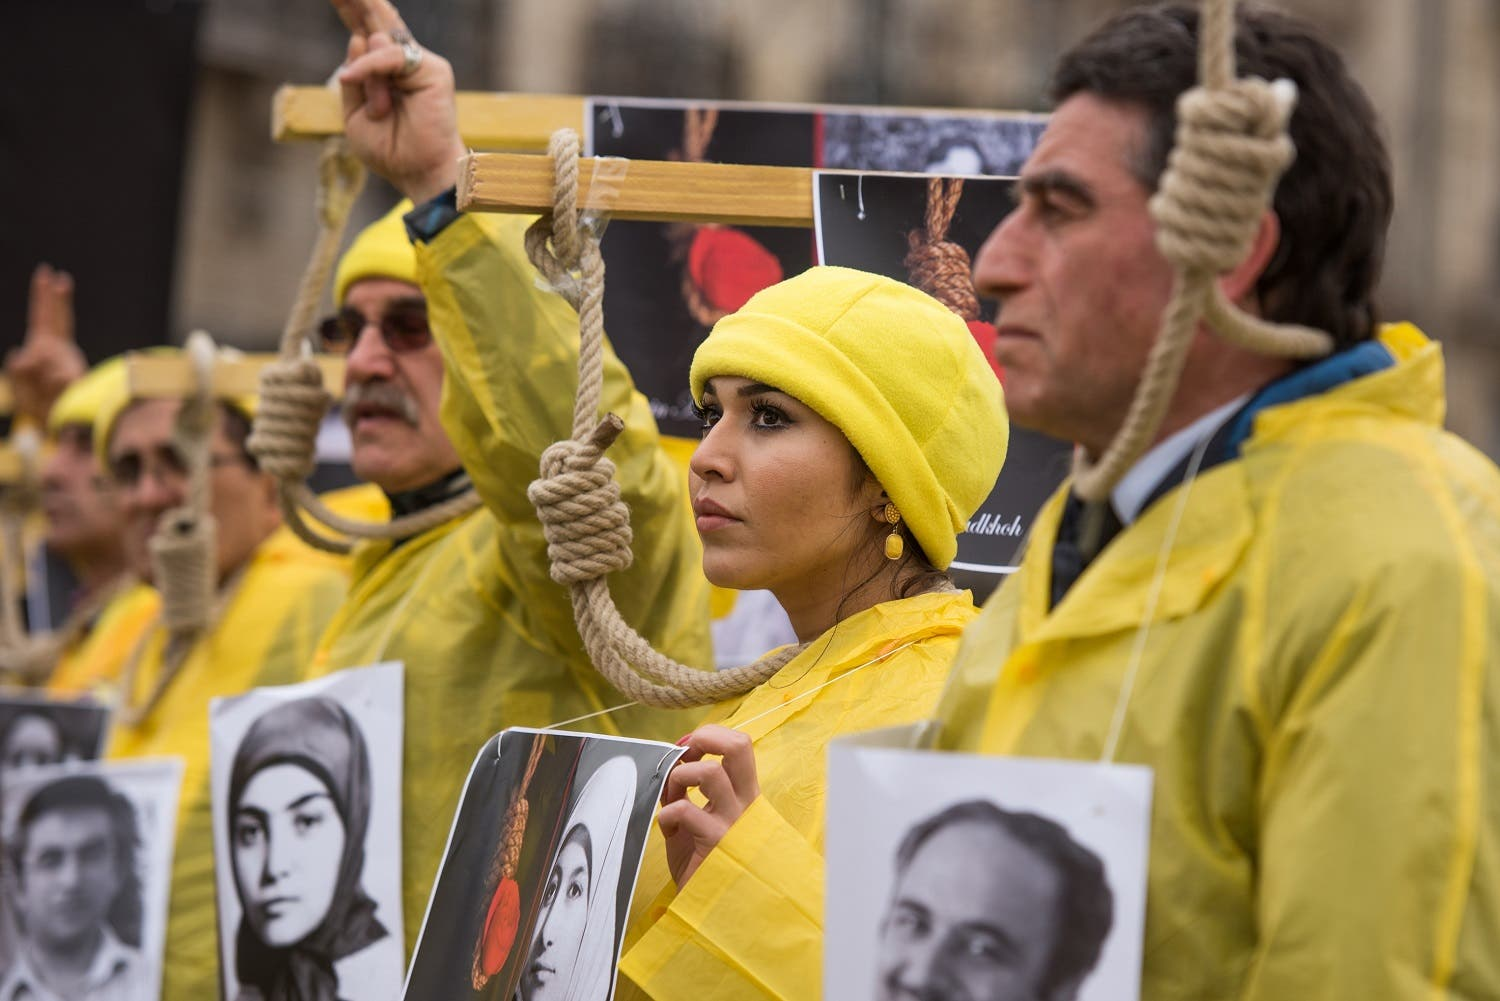 Iranian opposition protesters march during a rally to protest against executions in Iran, as Iranian President Hassan Rouhani is in France for a two-day official visit, in Paris, on Jan. 28, 2016. (AP)